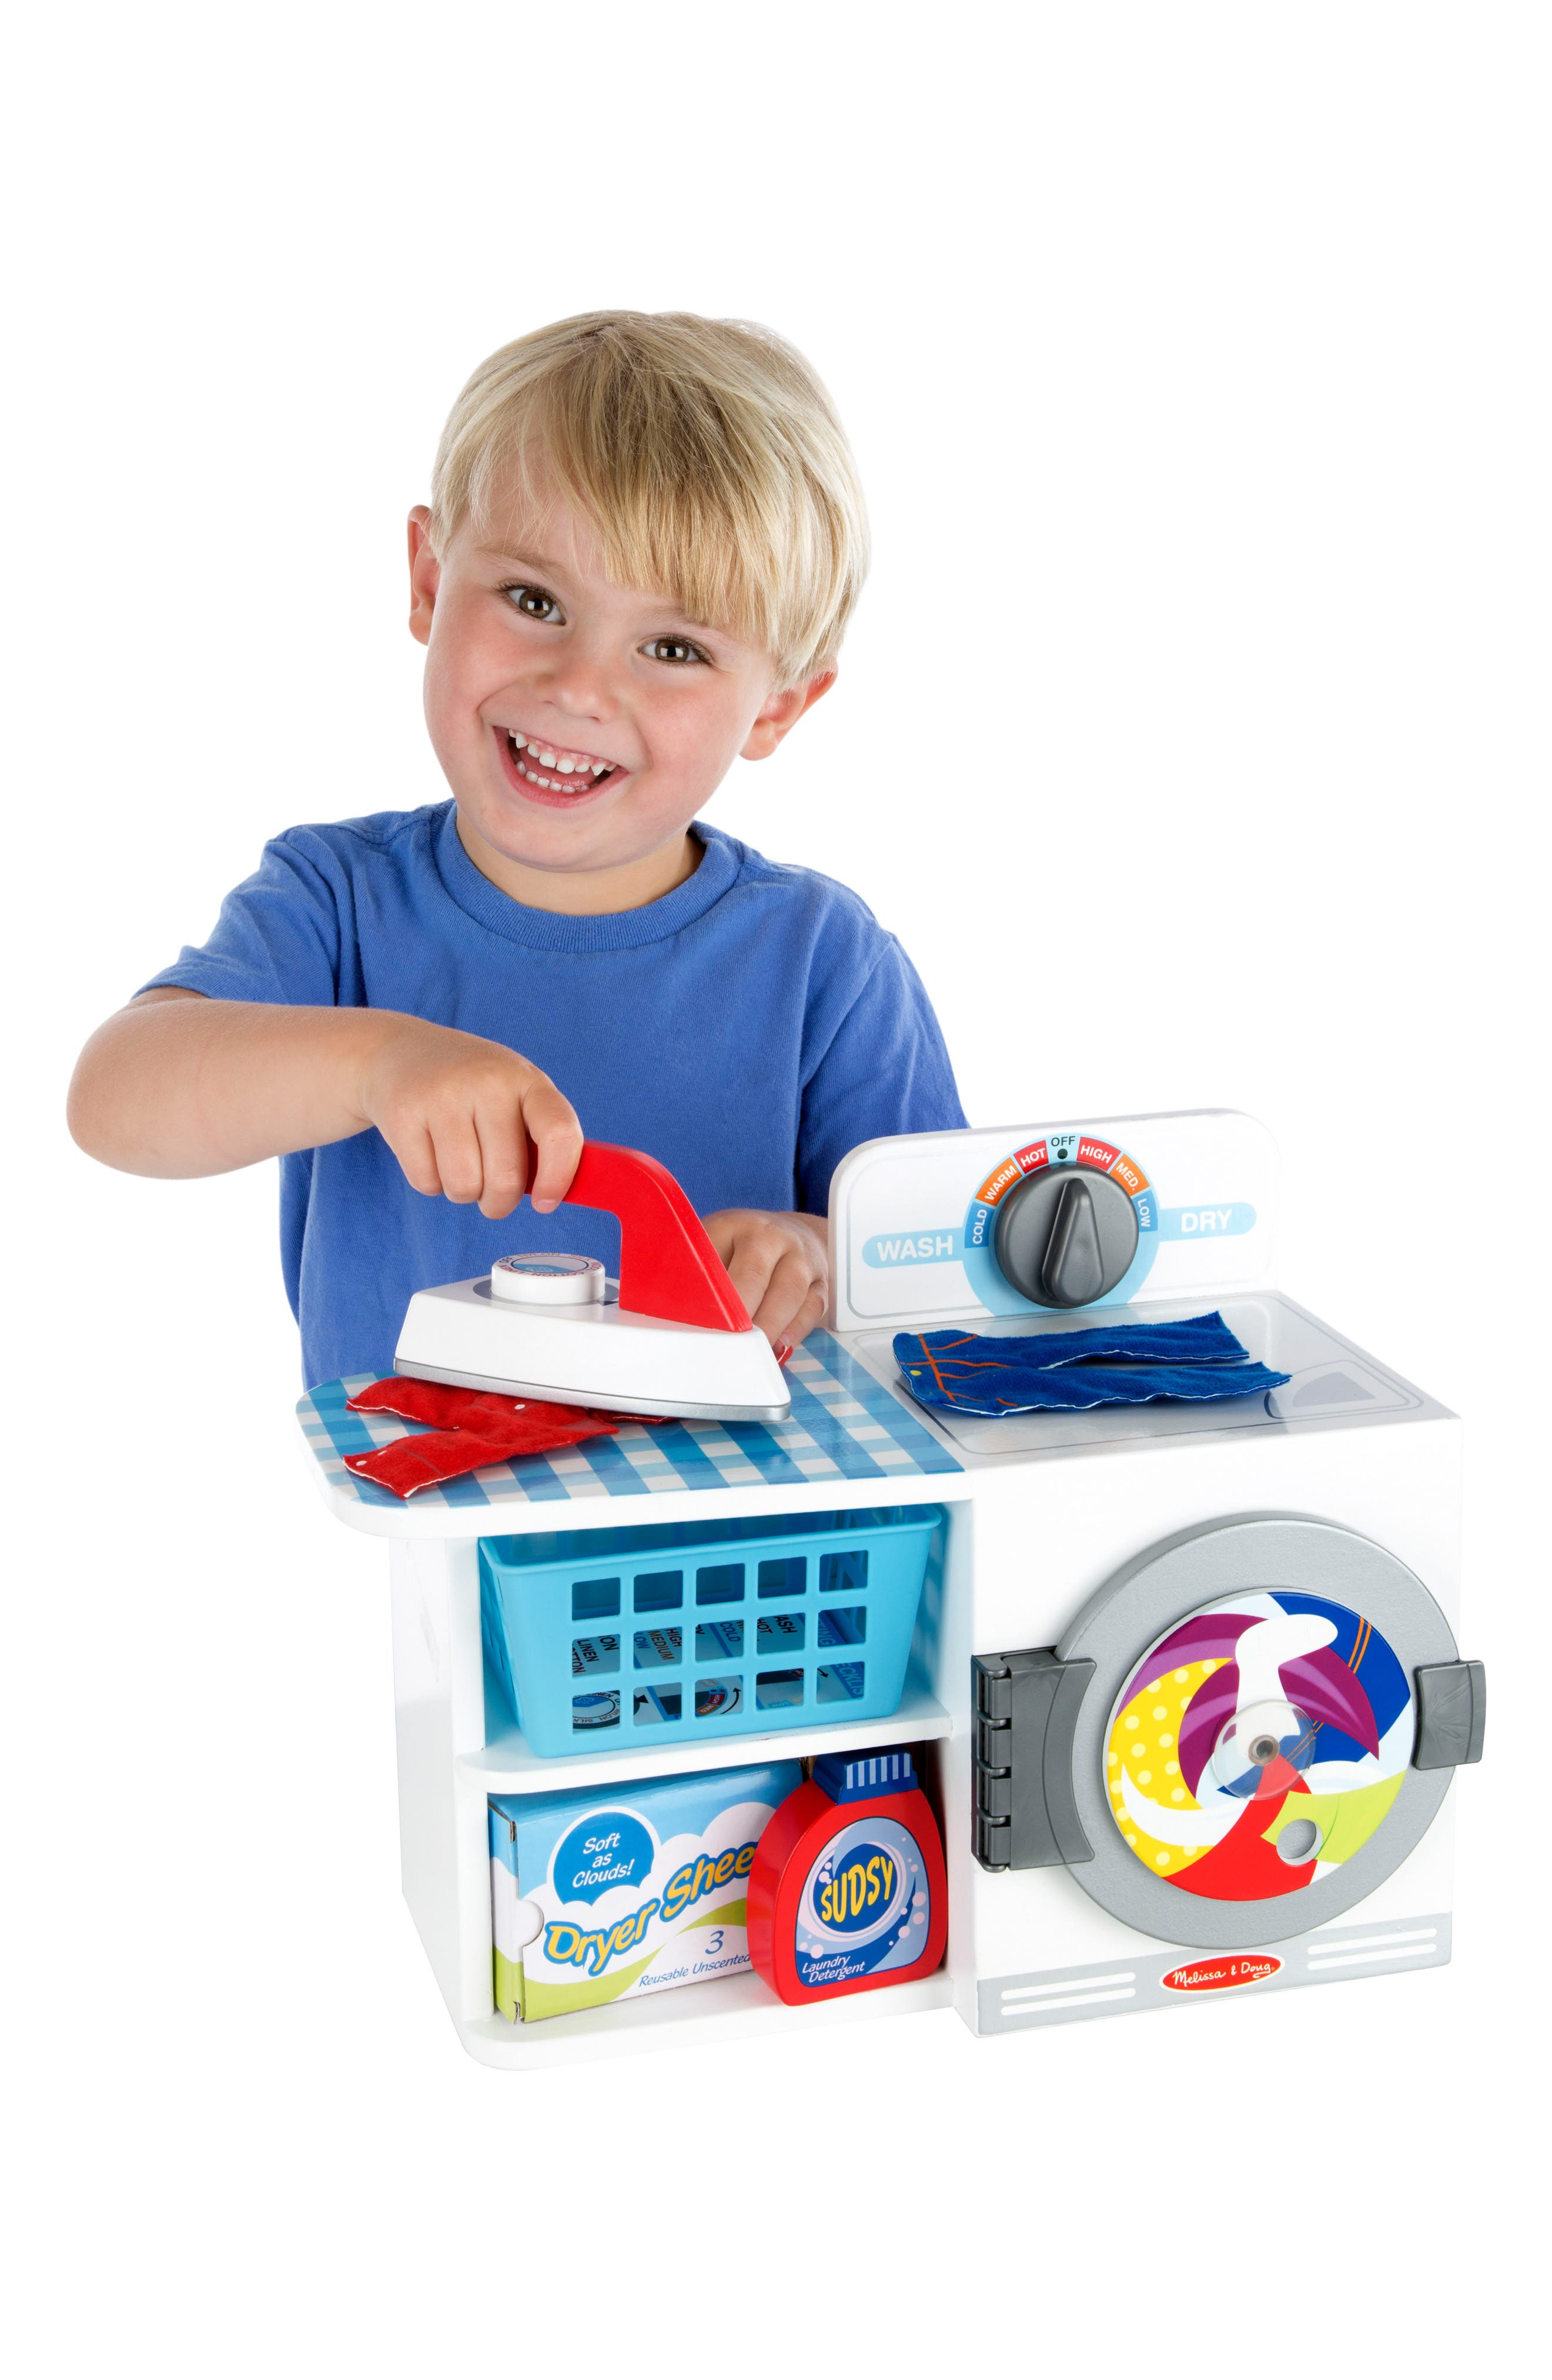 Let's Play House! Wash, Dry & Iron 8-Piece Play Set,                             Alternate thumbnail 3, color,                             100